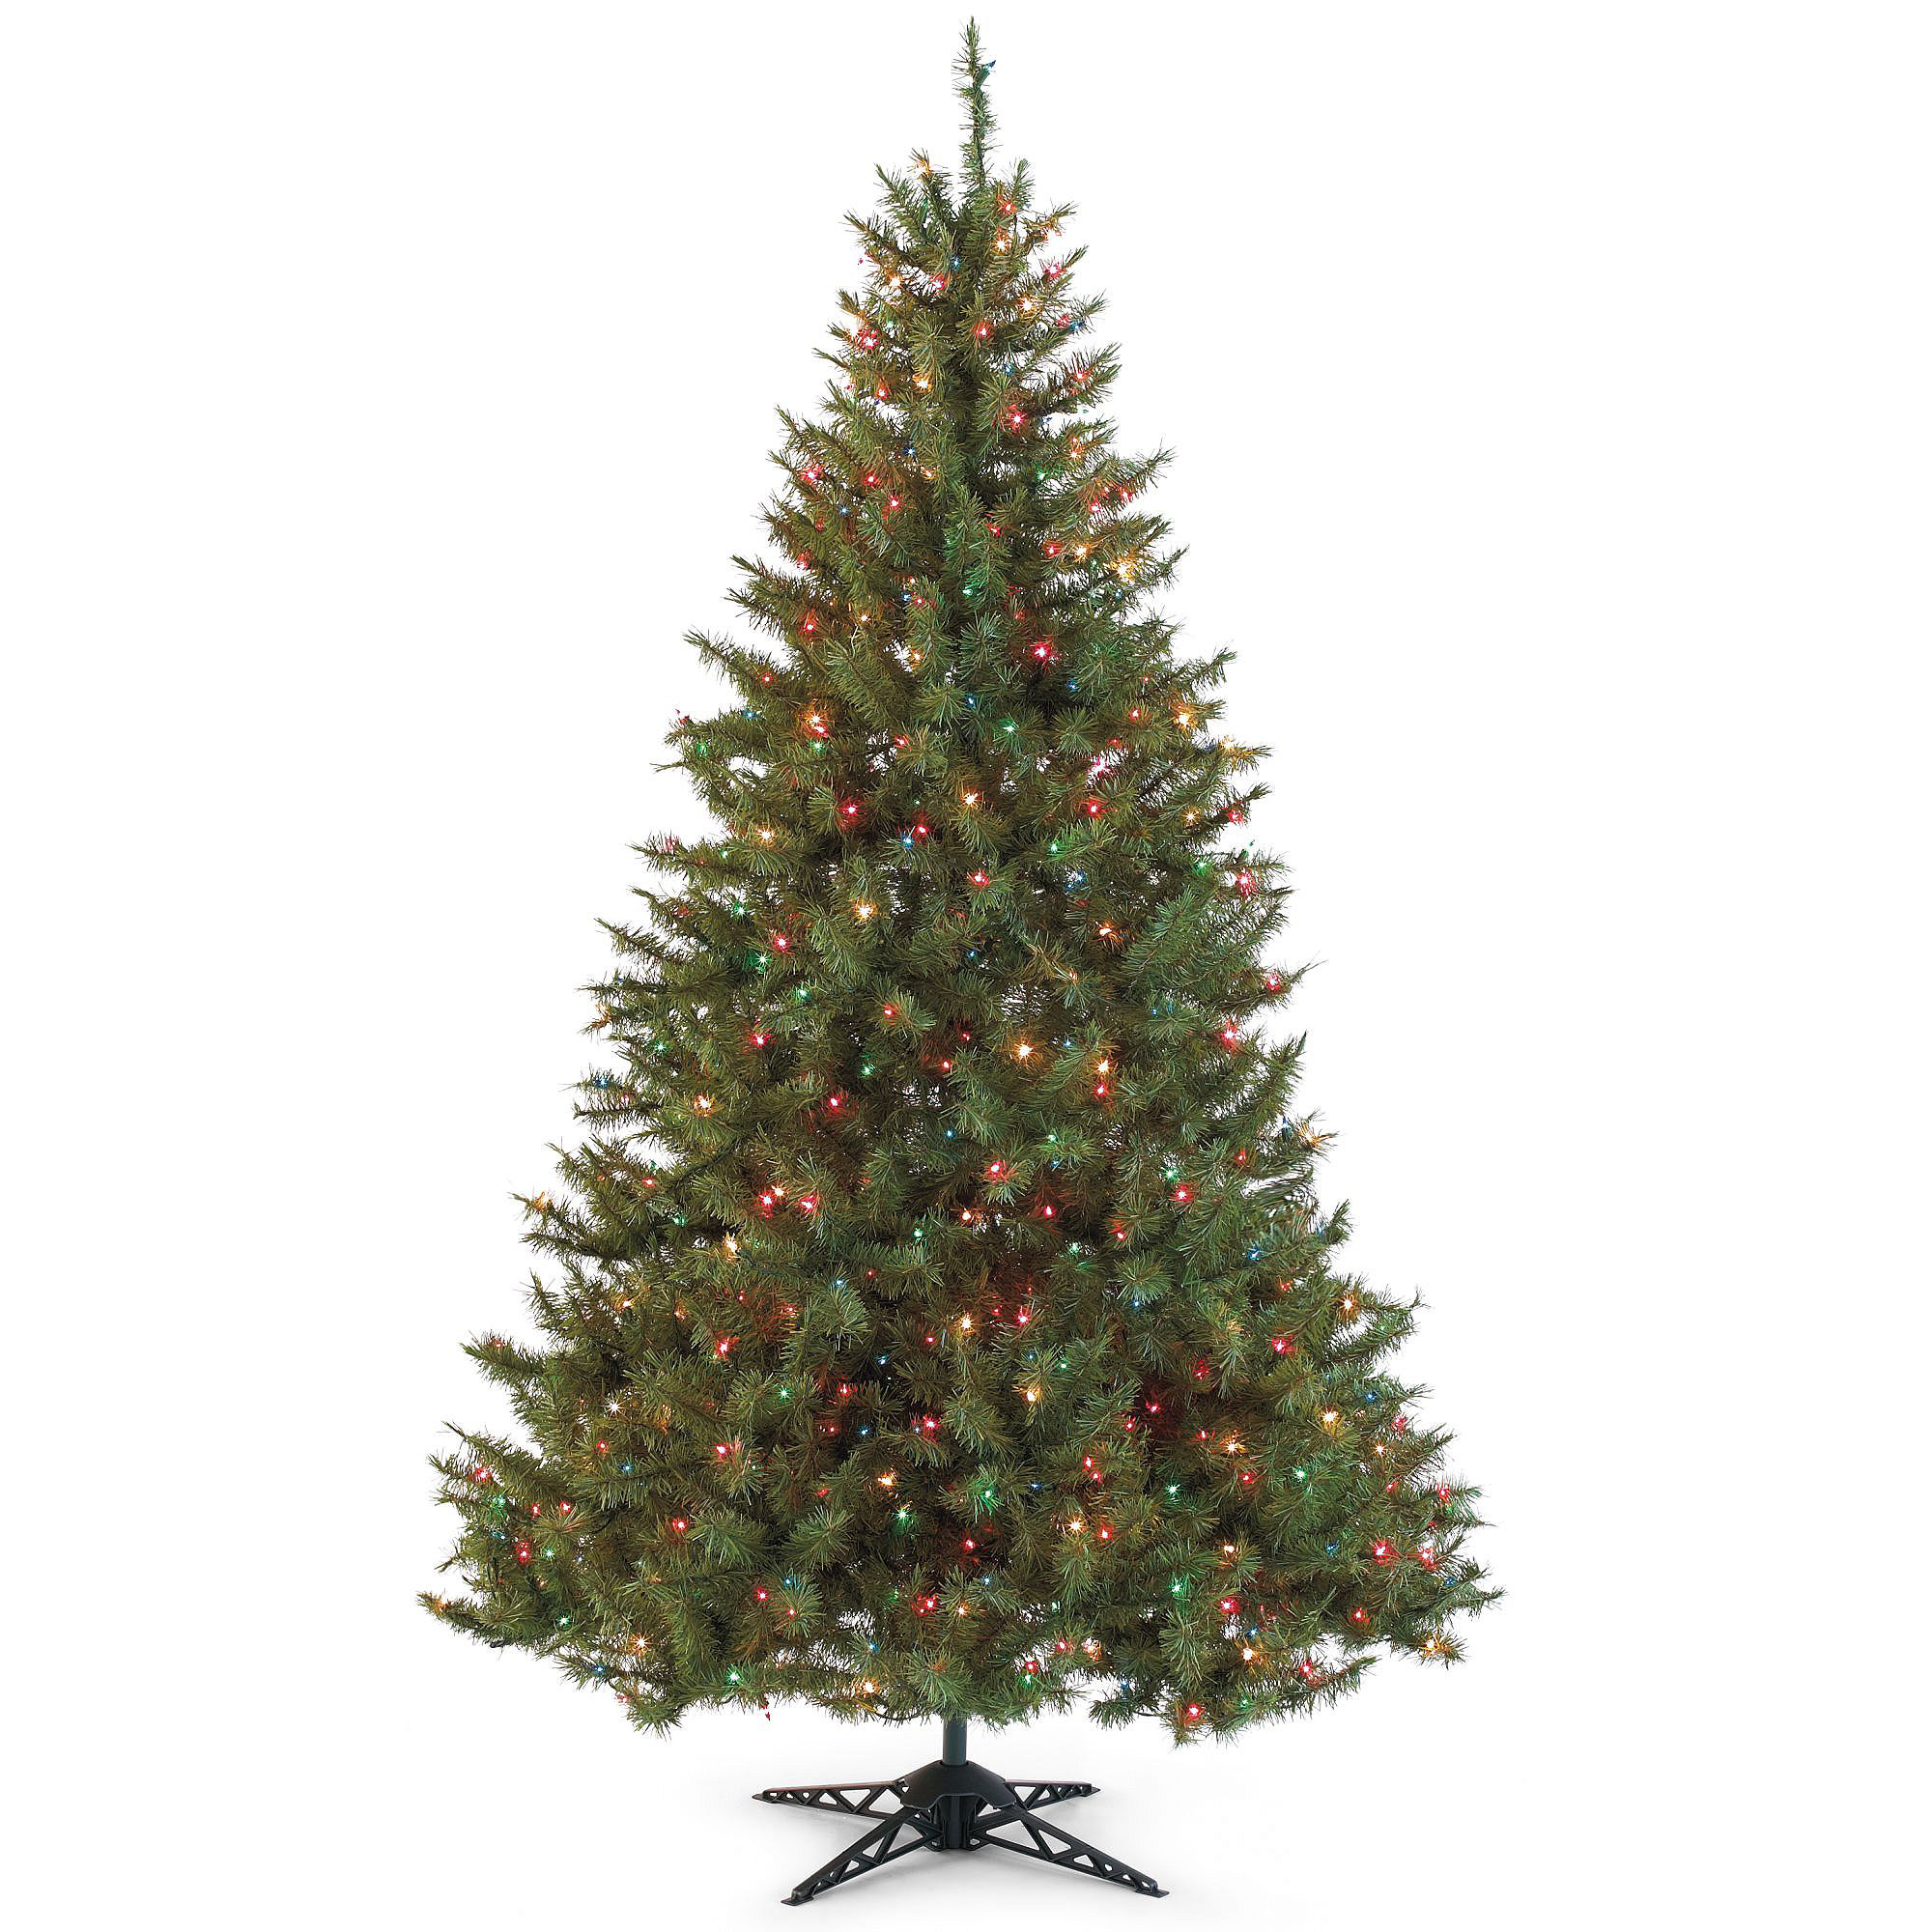 9 Foot Christmas Tree - Buy 9 Ft Artificial Christmas ...